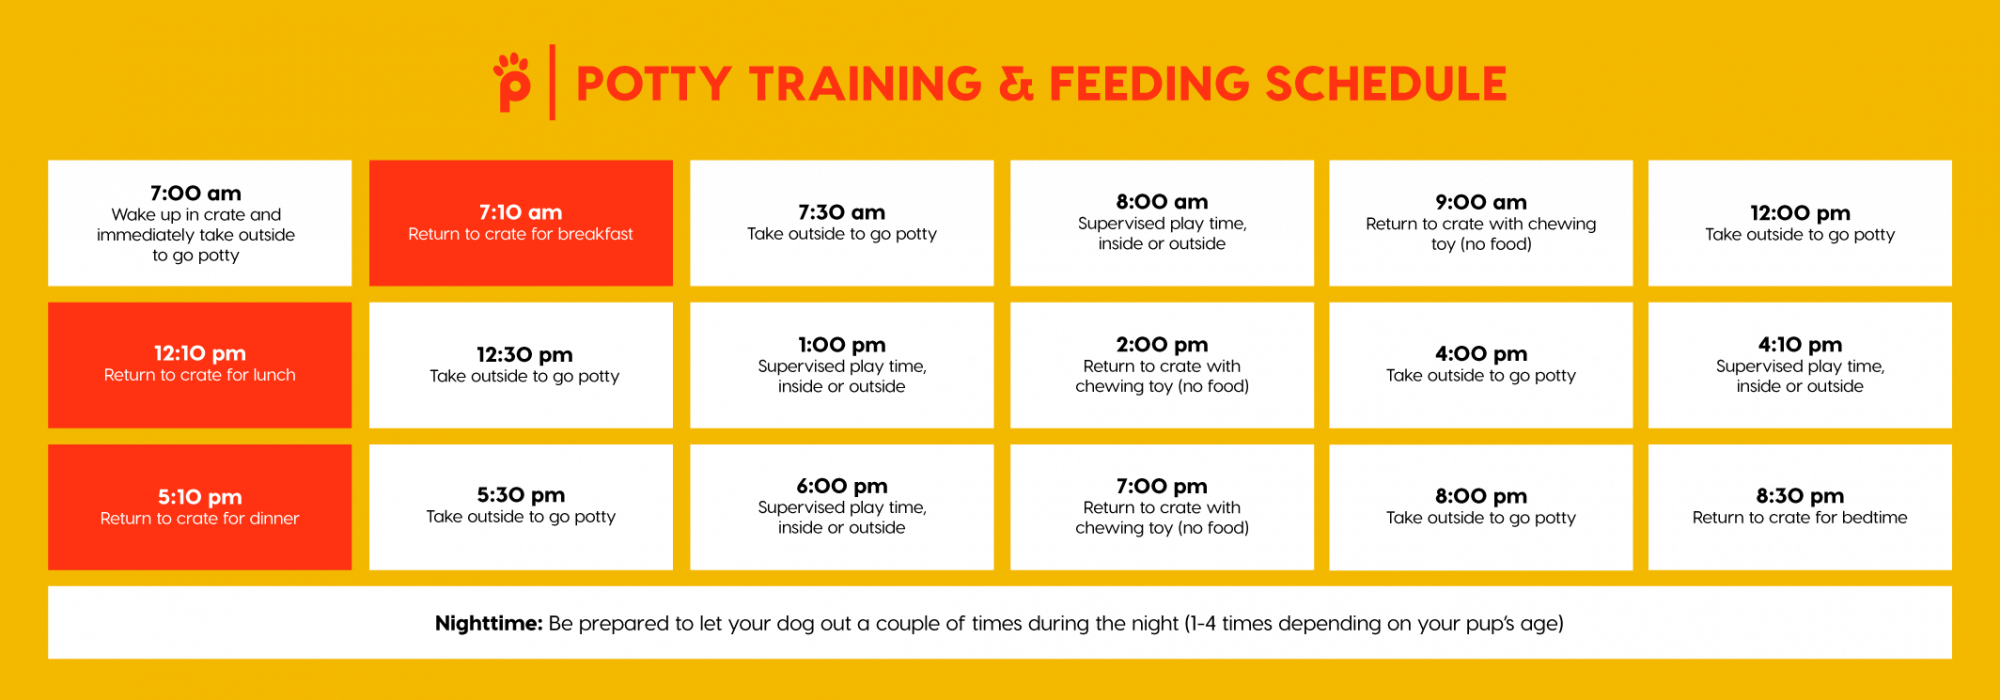 potty training schedule for puppy | Pupford